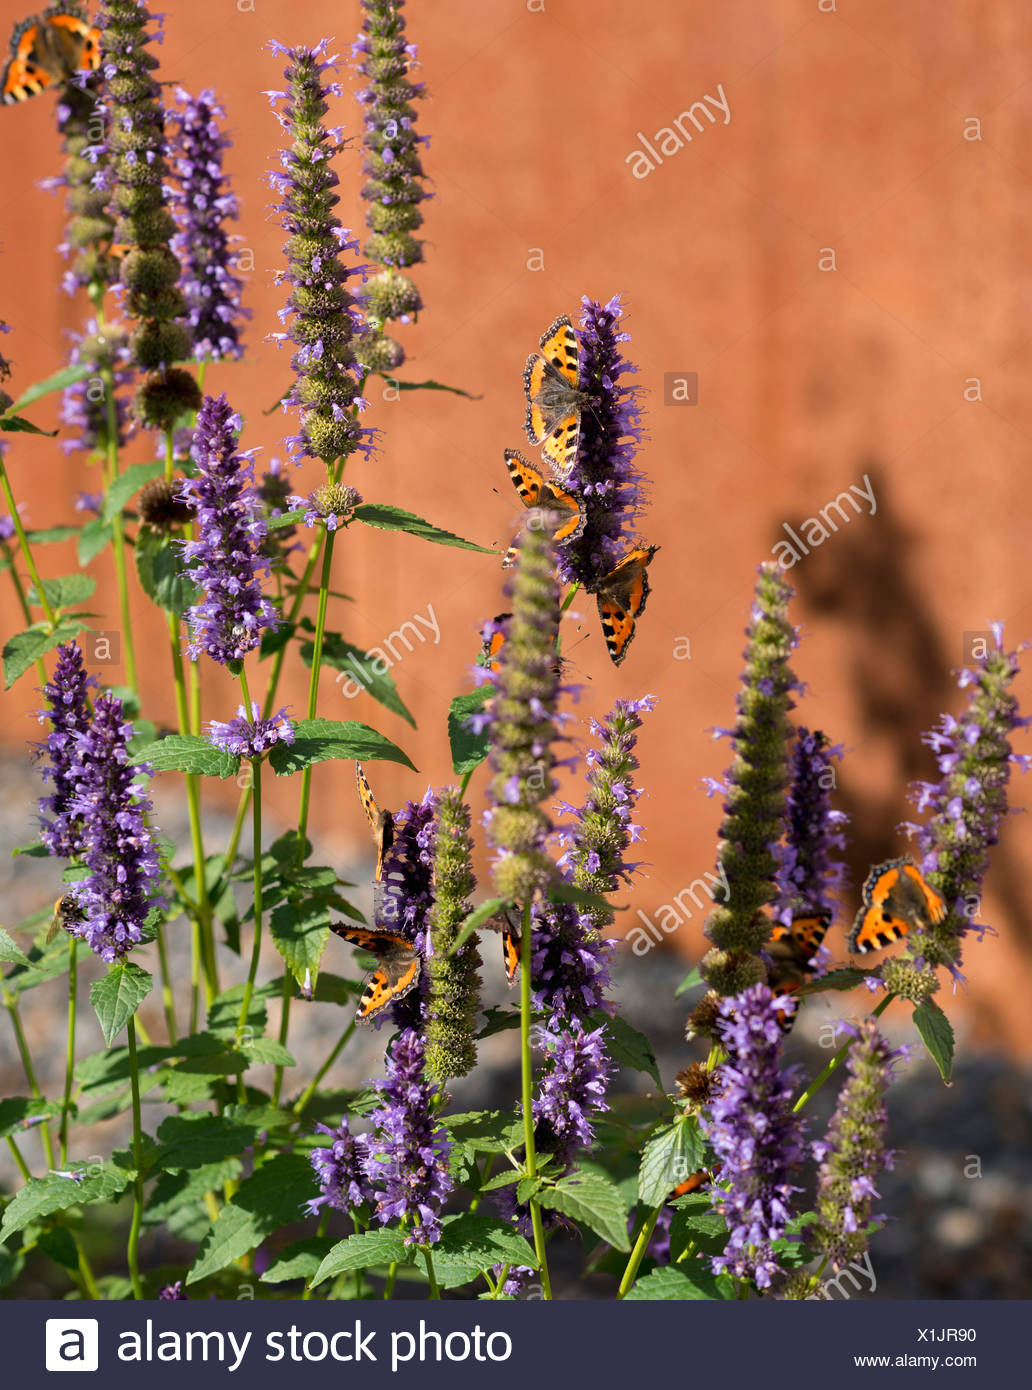 Germany, Aachen, blue fortune and small tortoiseshell butterflies - Stock Image